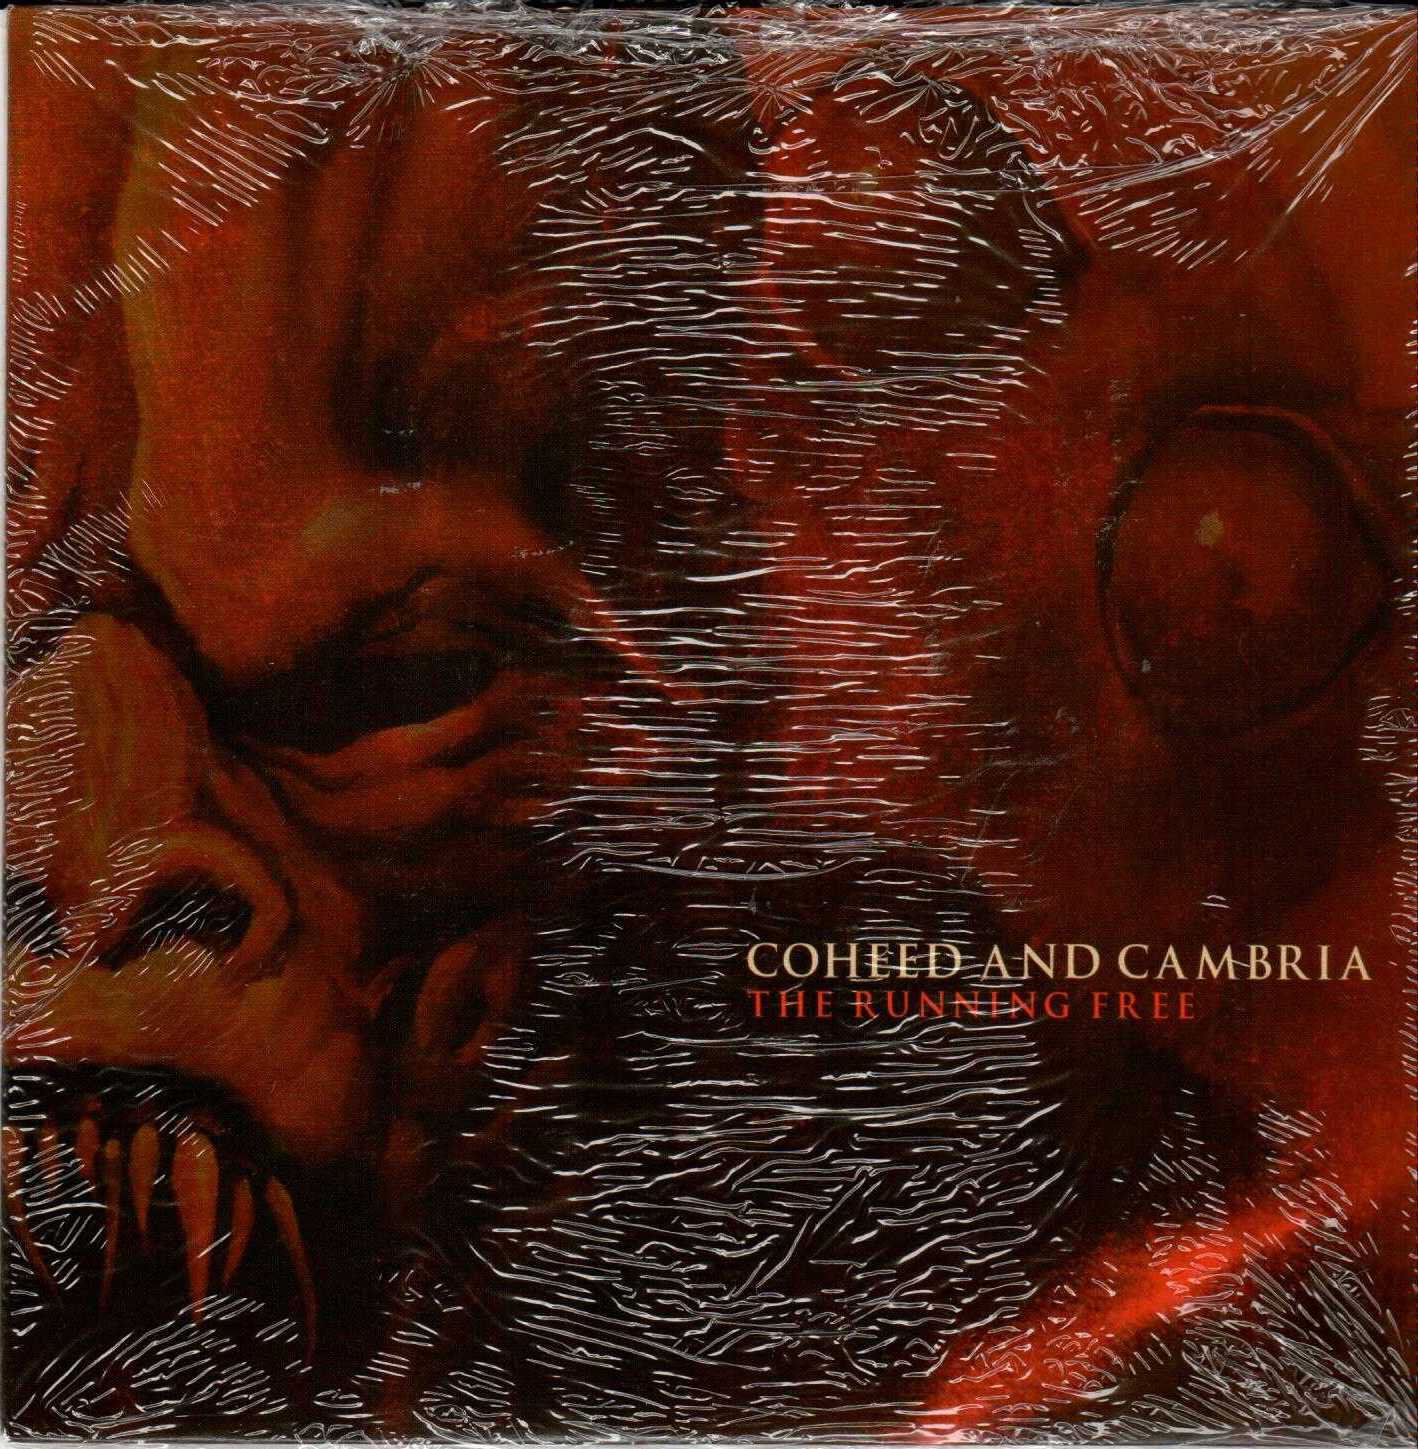 """COHEED AND CAMBRIA The Running Free 2007 US 2 Track Promotional 7"""" Vinyl Single"""